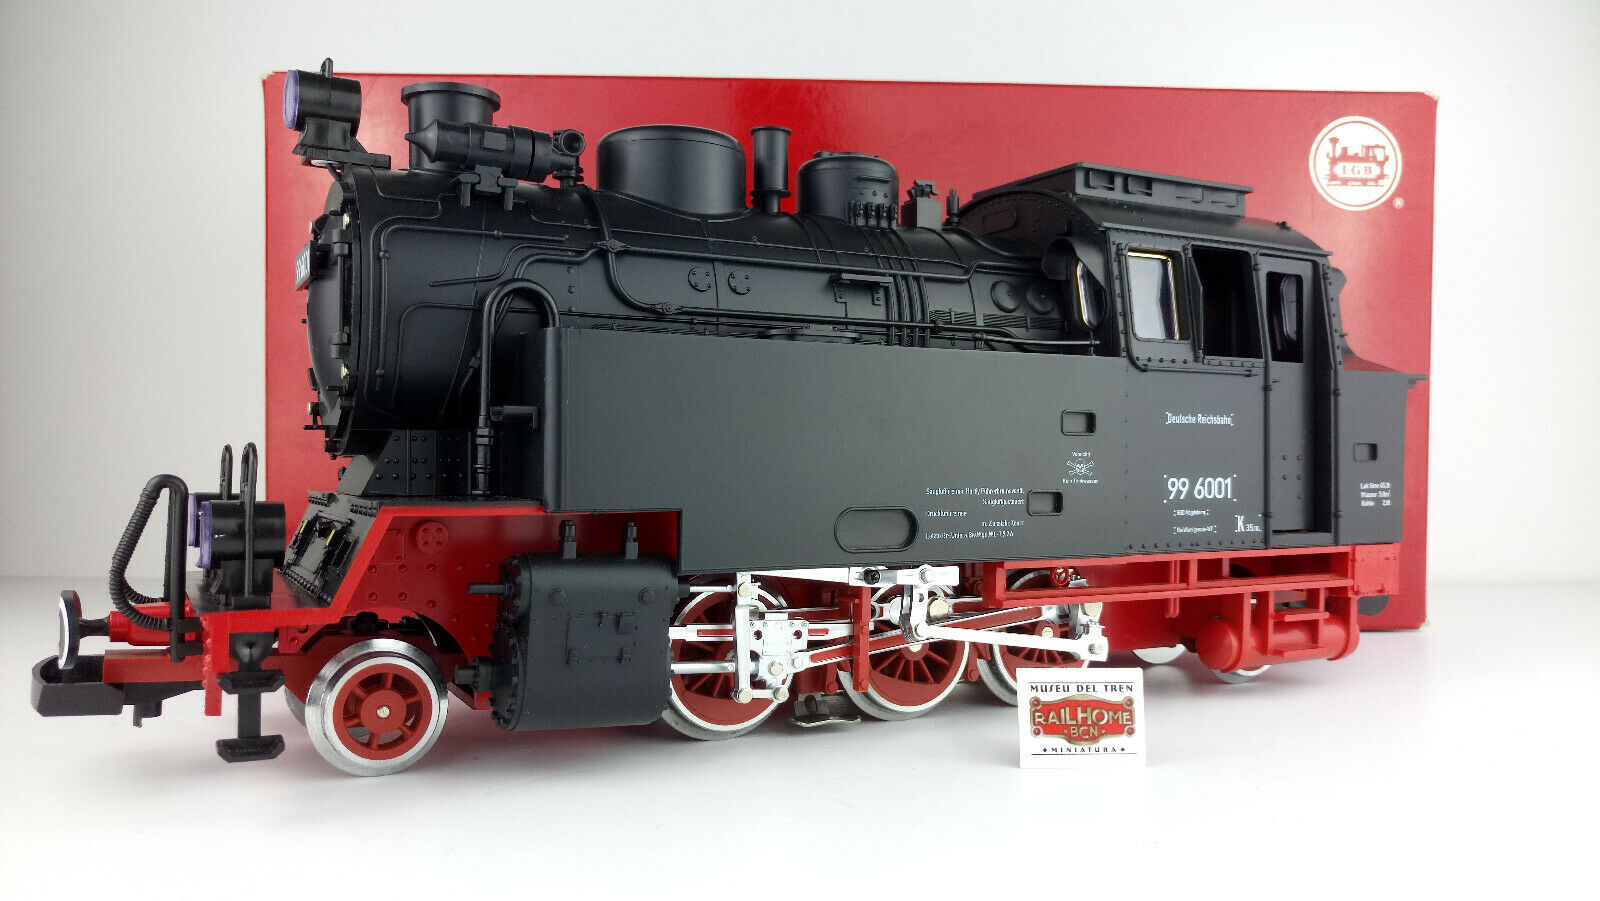 LGB 22801 Steam Locomotive BR 99 6001 Dr with Smoke Generator  - AS NEW  - TOP